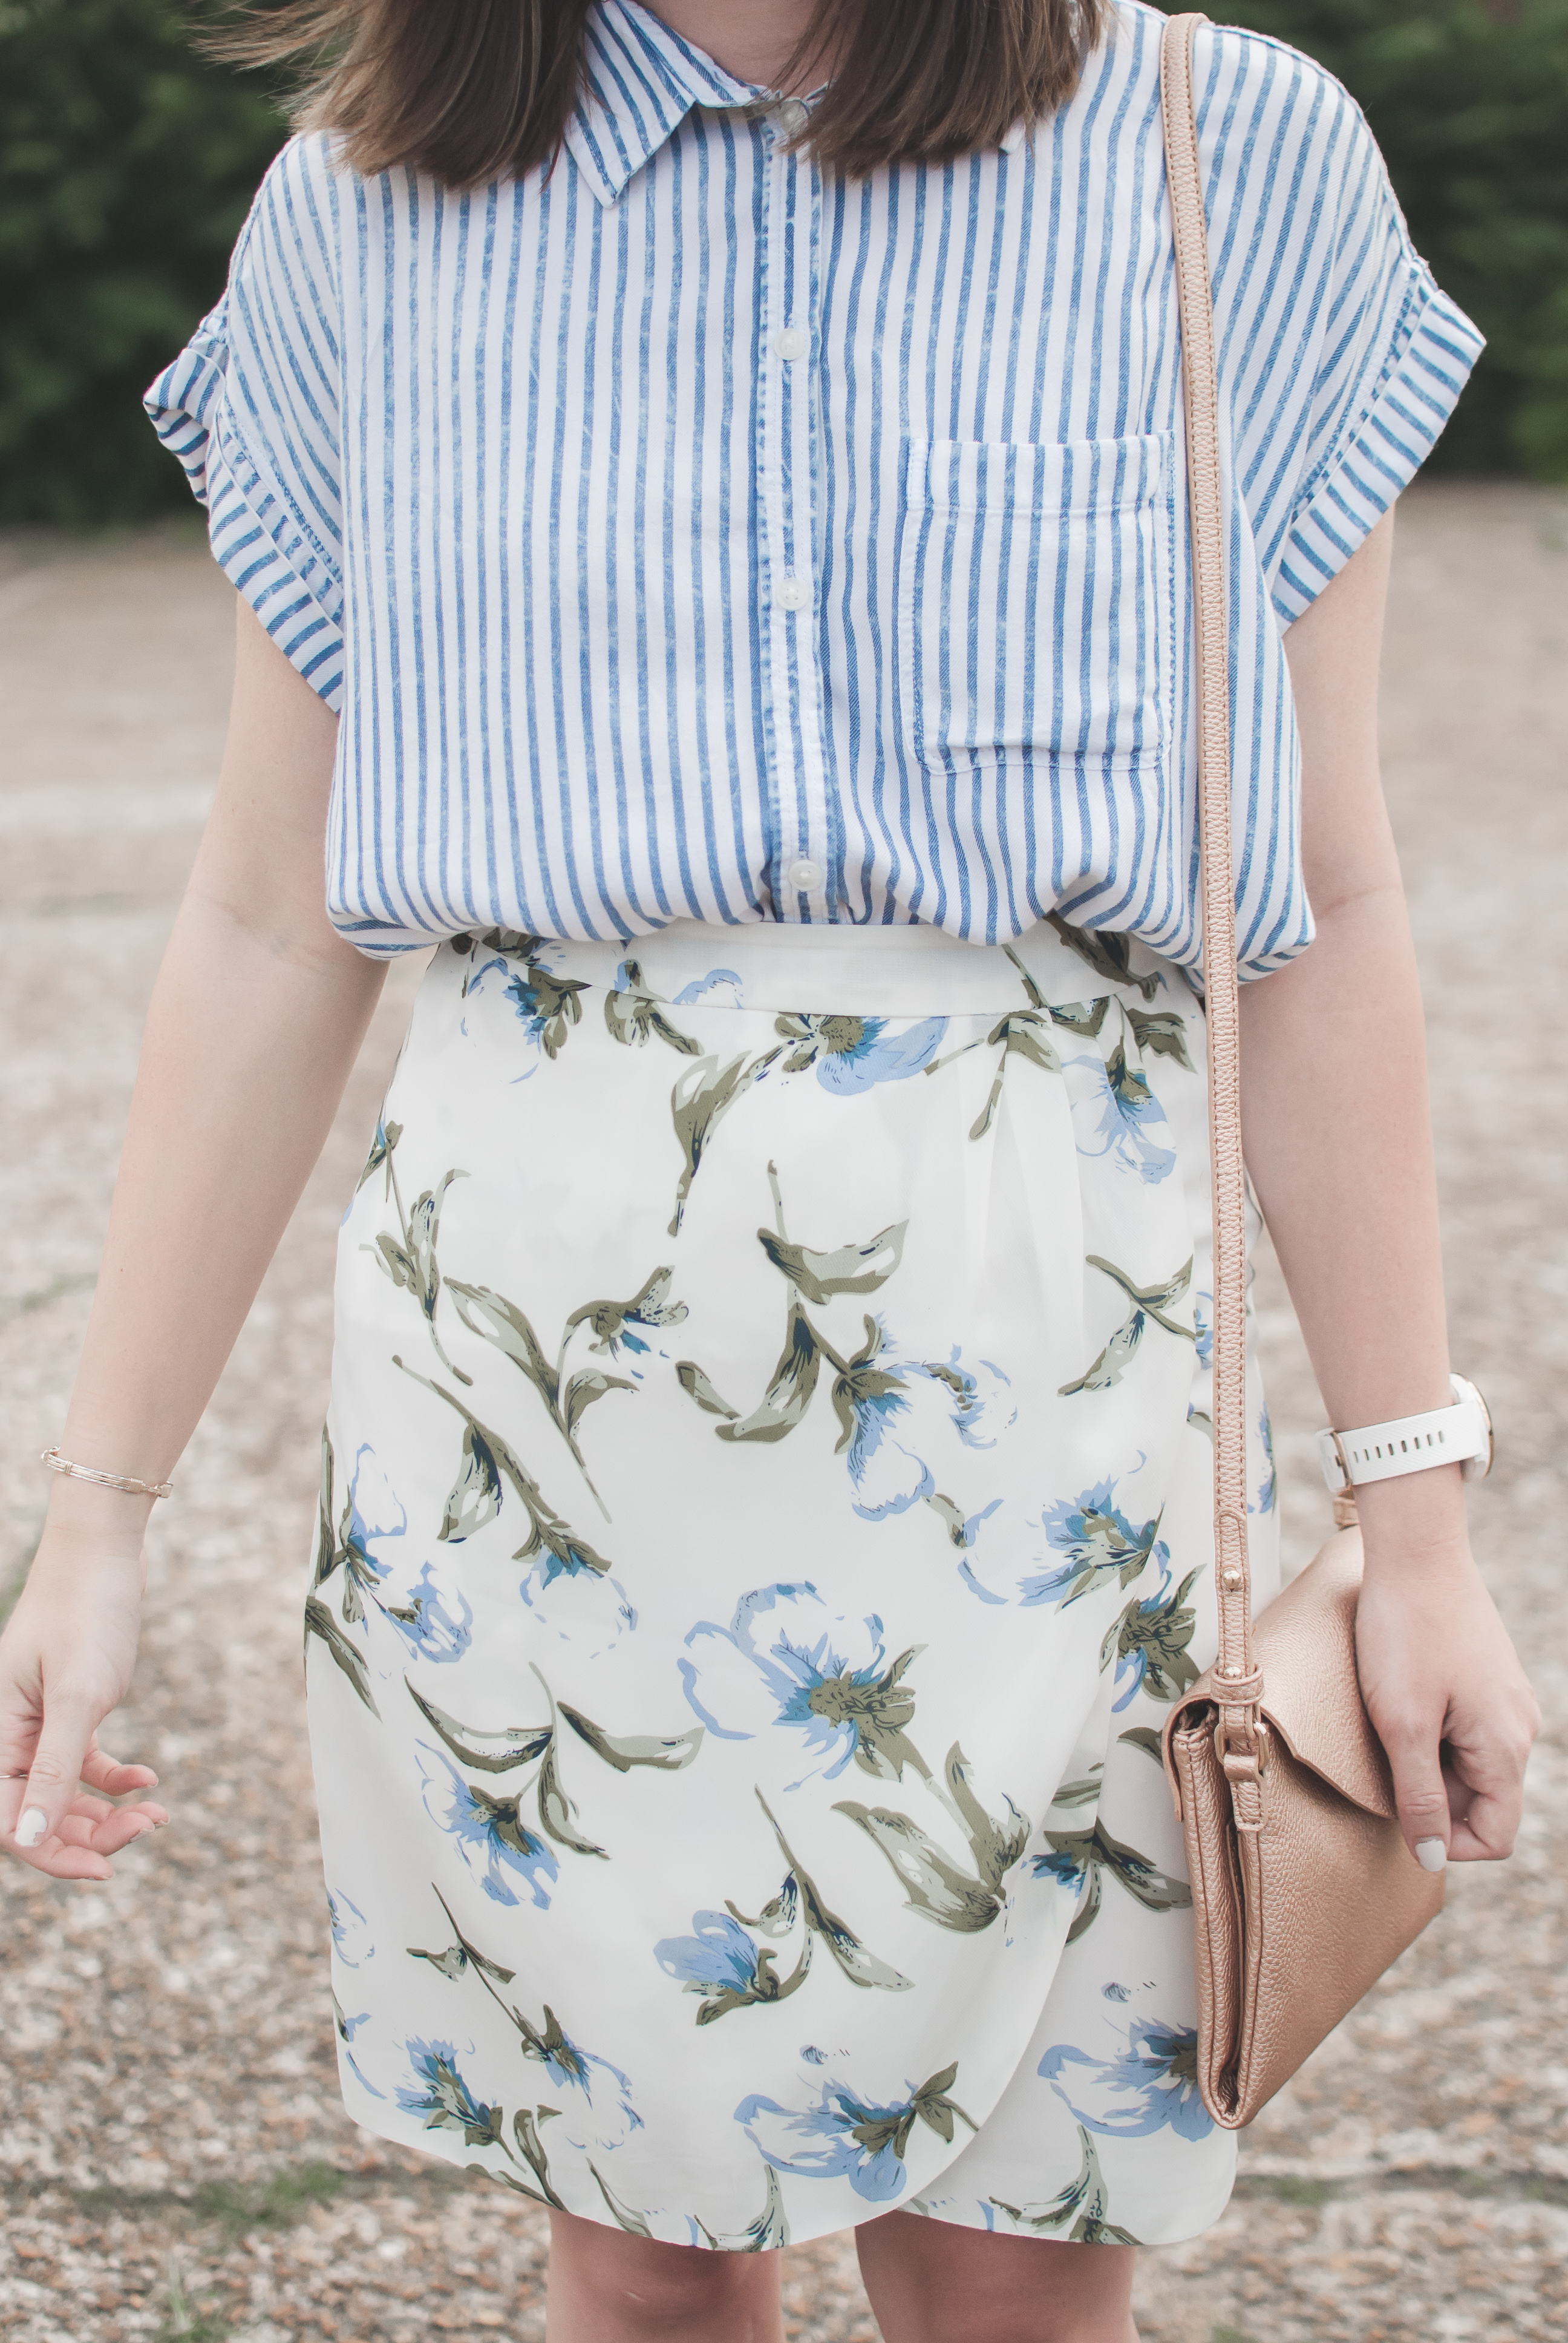 striped top and floral skirt